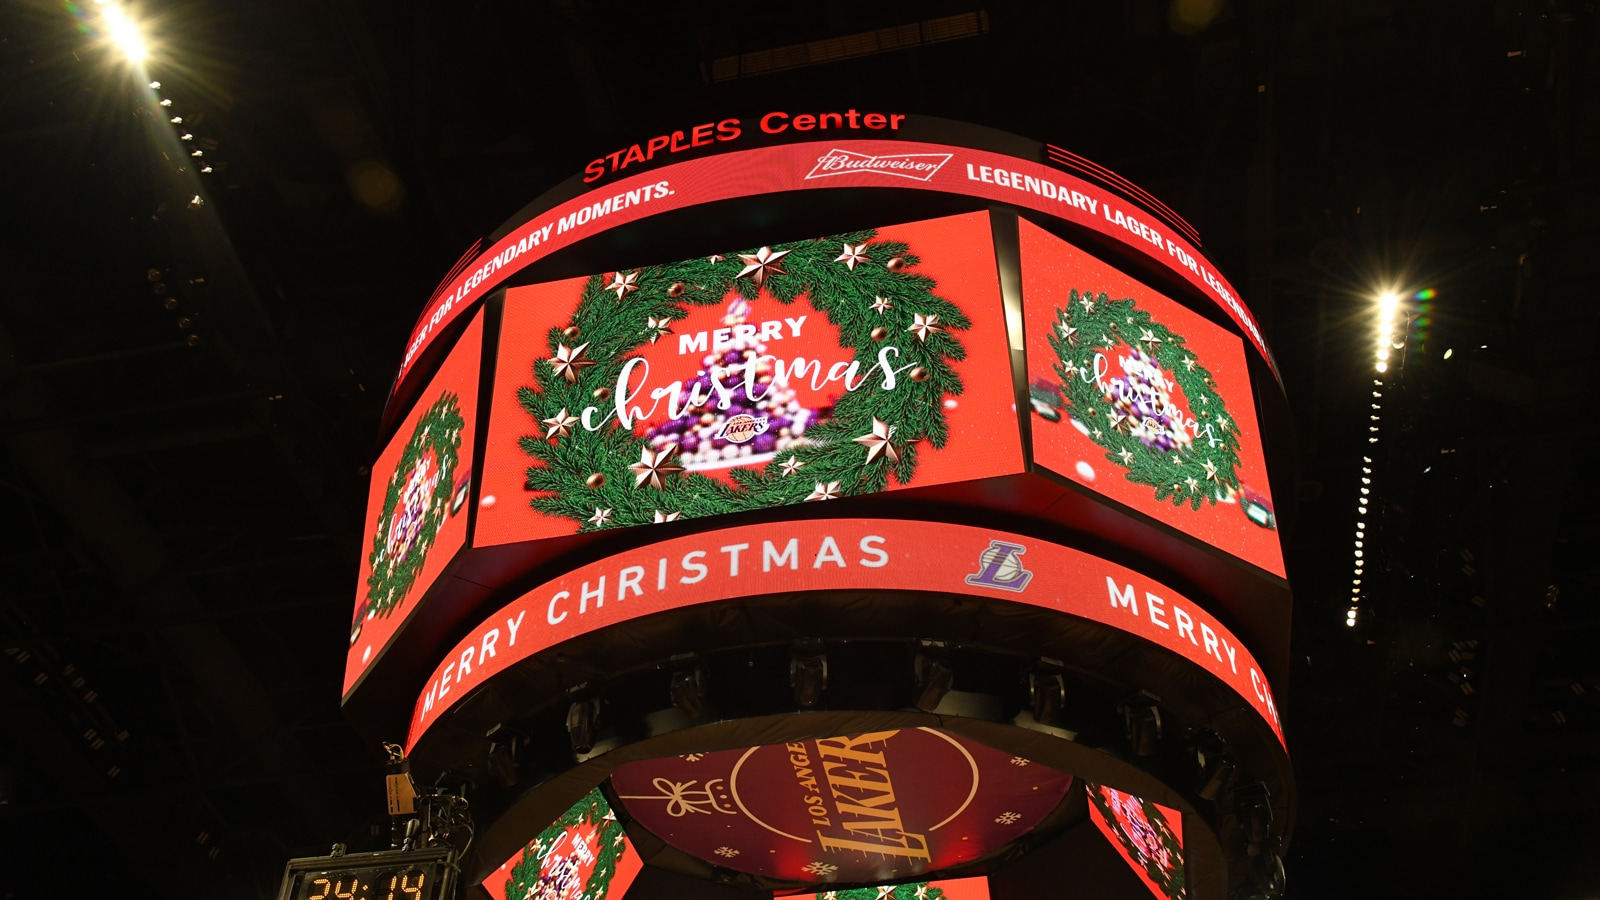 Christmas Day game at the Staples center, showing a wreath on the jumbotron